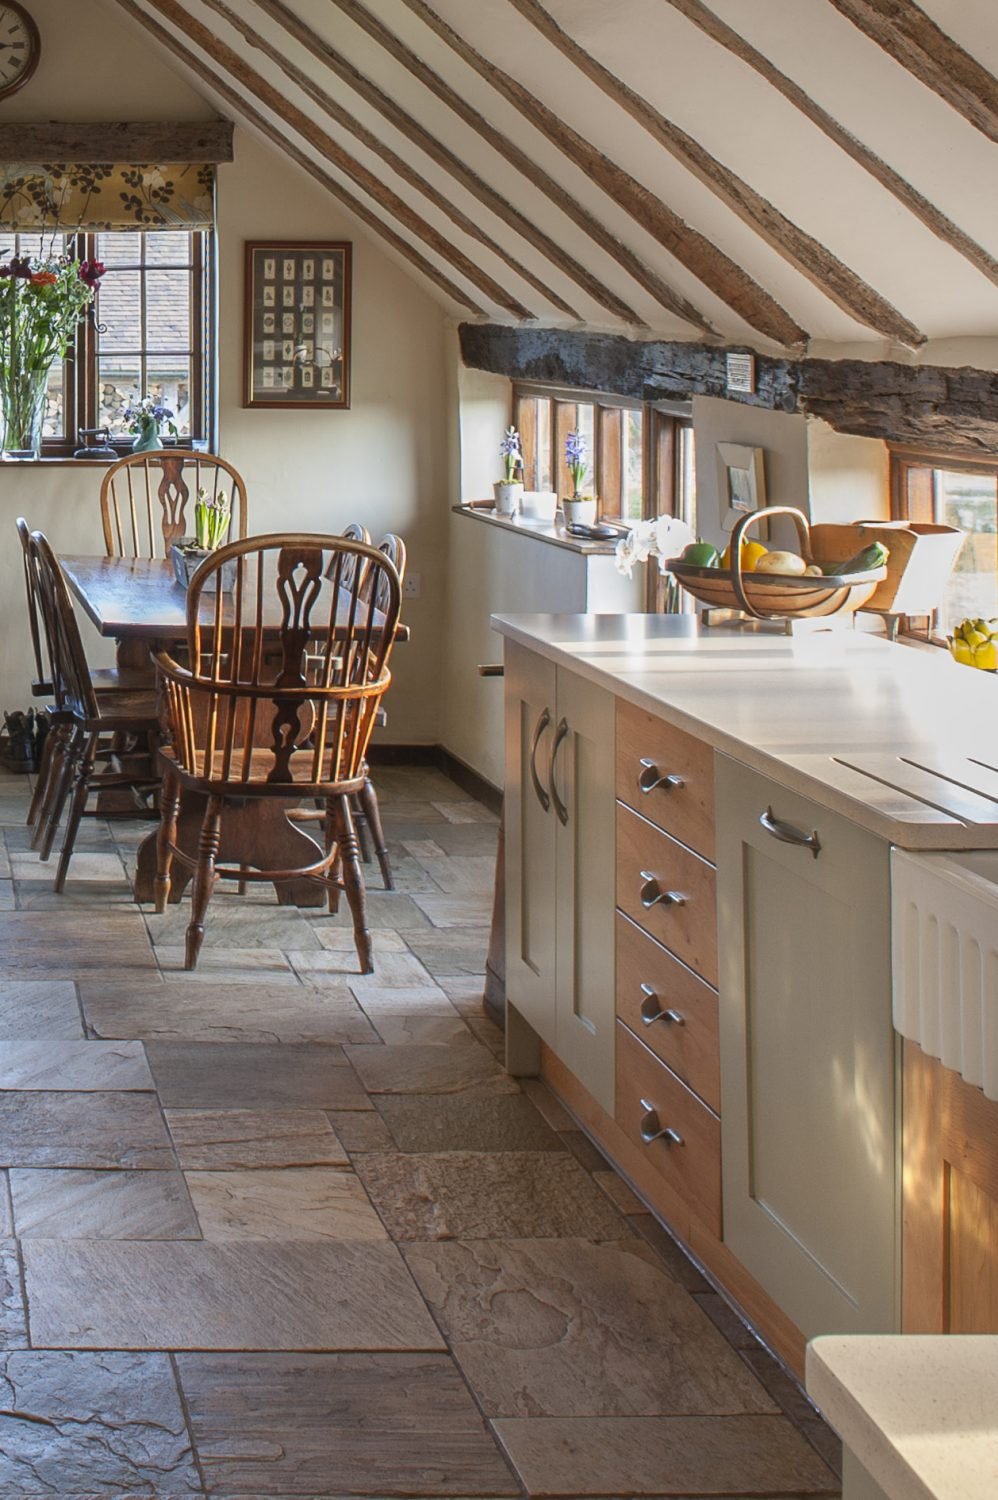 The kitchen's flag-stone floor was already in place when the couple bought the farmhouse and is ideal in a household where visitors often have muddy wellies – or muddy paws